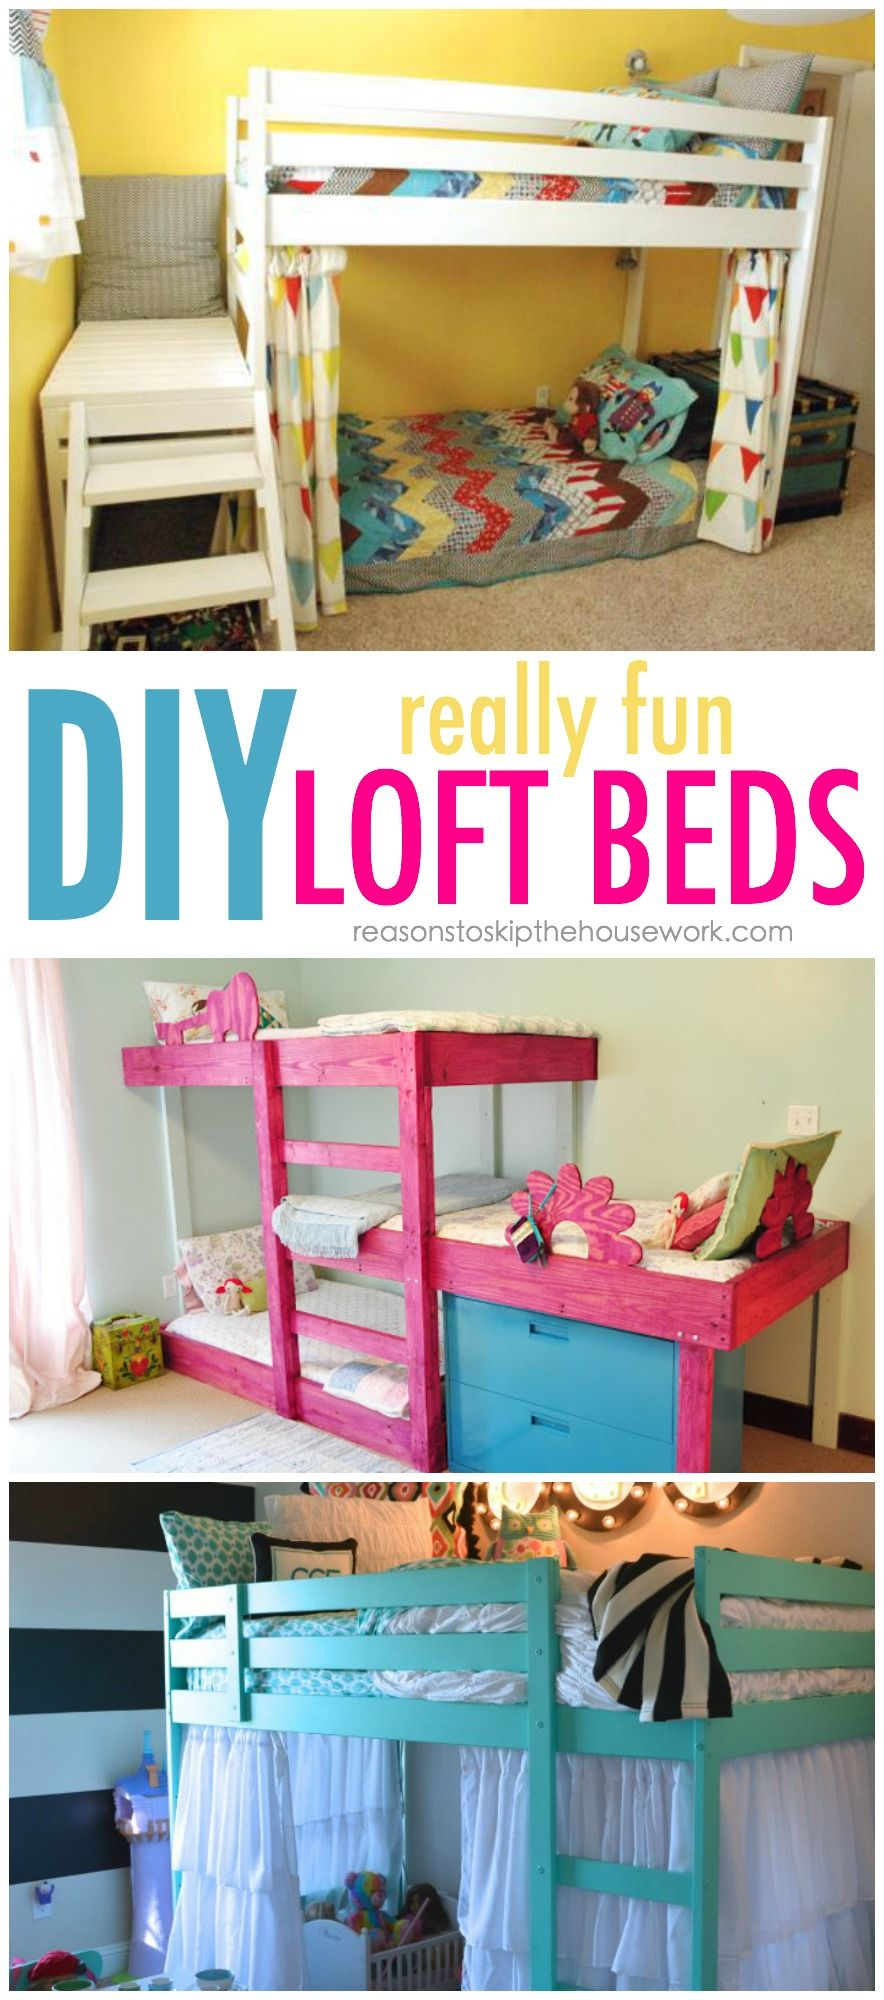 diy bunk beds tutorials and plans - Bunk Beds For Kids Plans